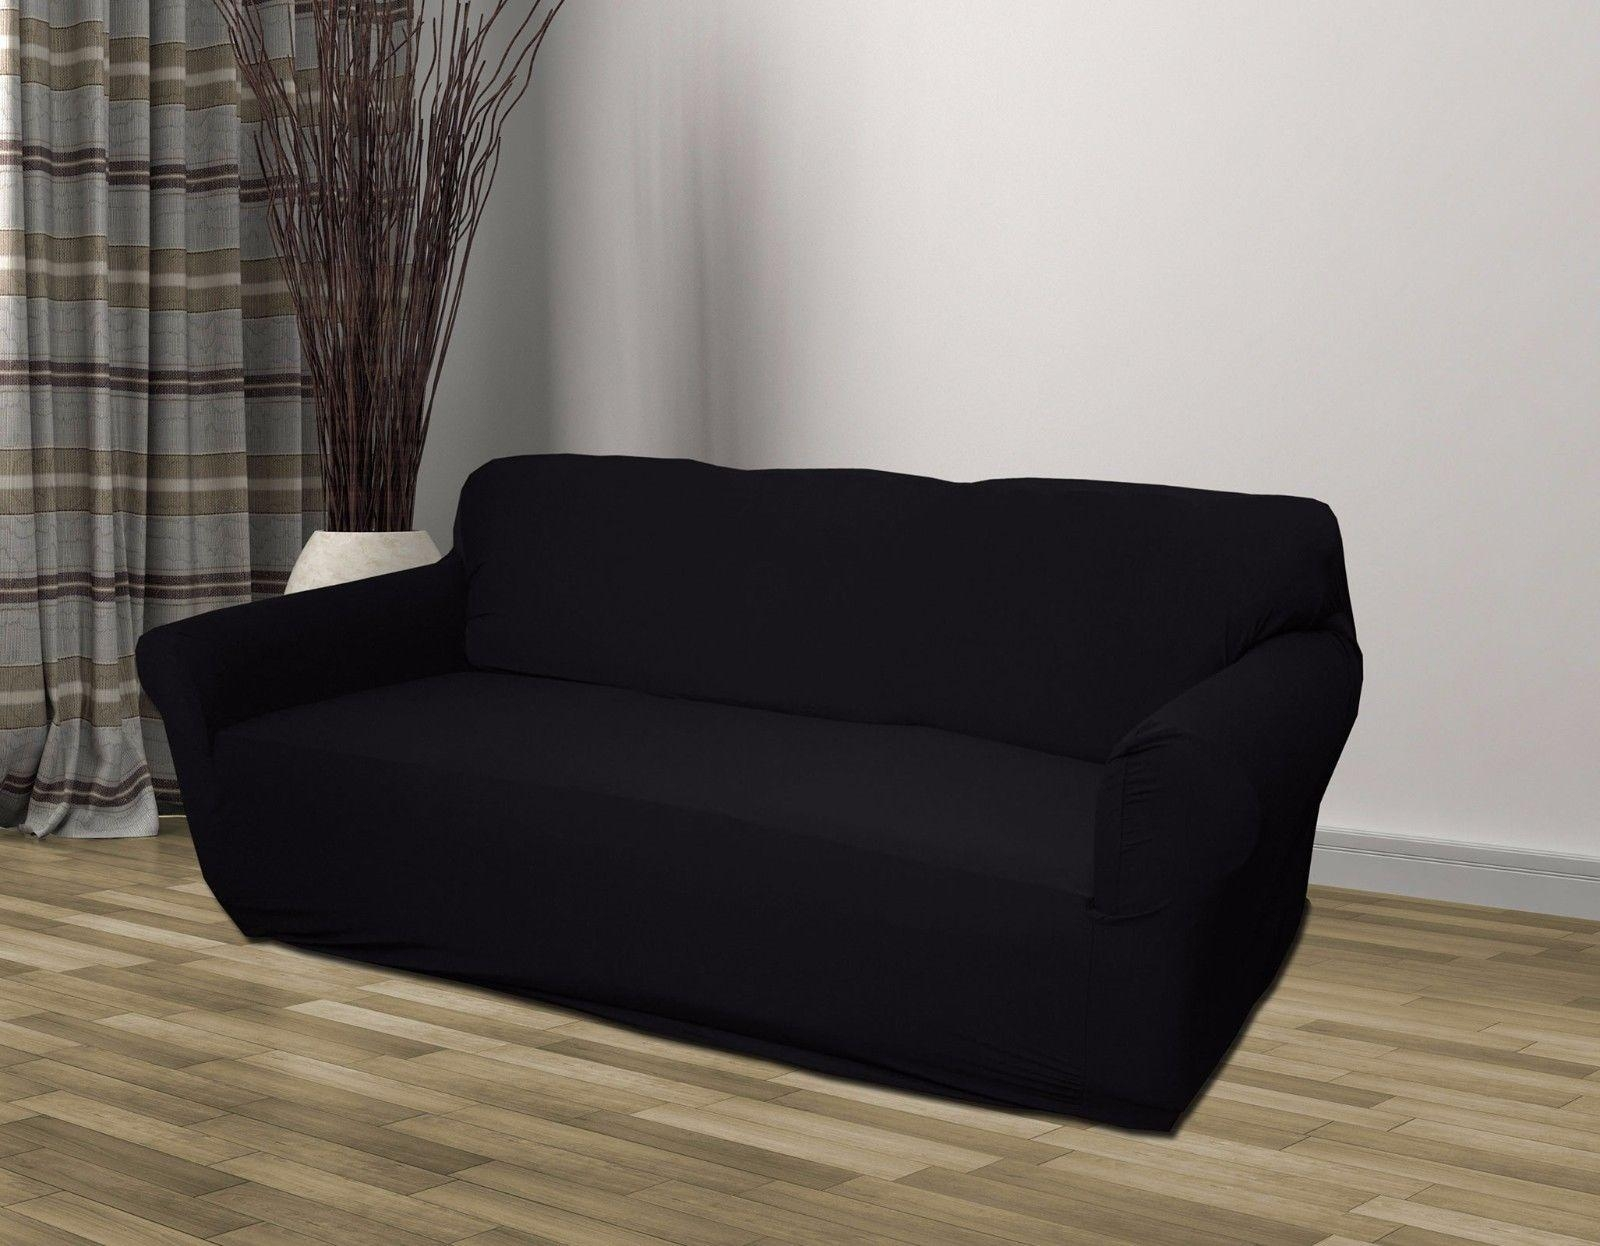 Black Jersey Sofa Stretch Slipcover, Couch Cover, Chair Loveseat Throughout Black Slipcovers For Sofas (Image 3 of 20)